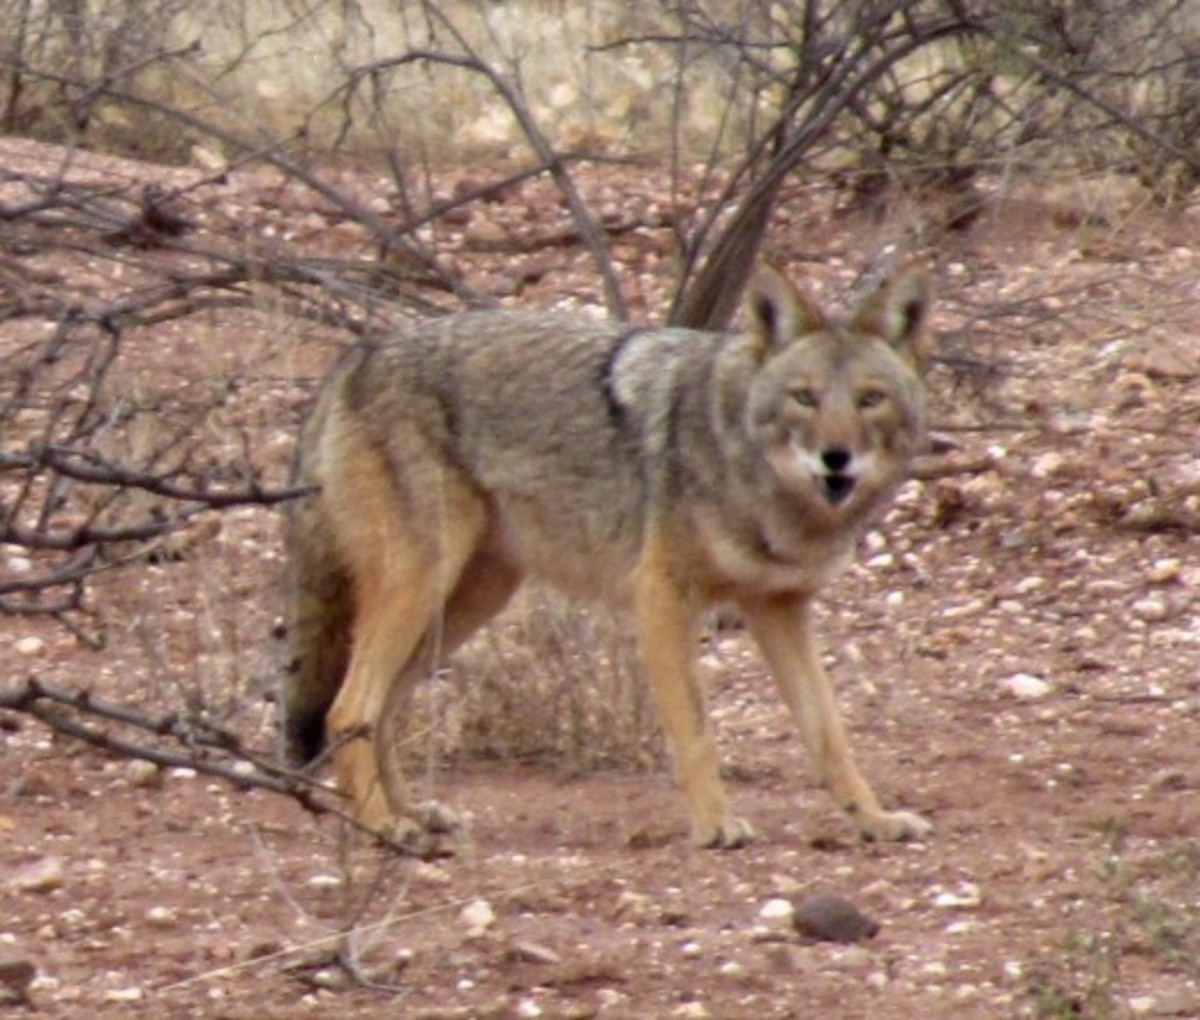 http://ghost32.hubpages.com/hub/The-Cool-Coyotes-of-Cochise-County-2